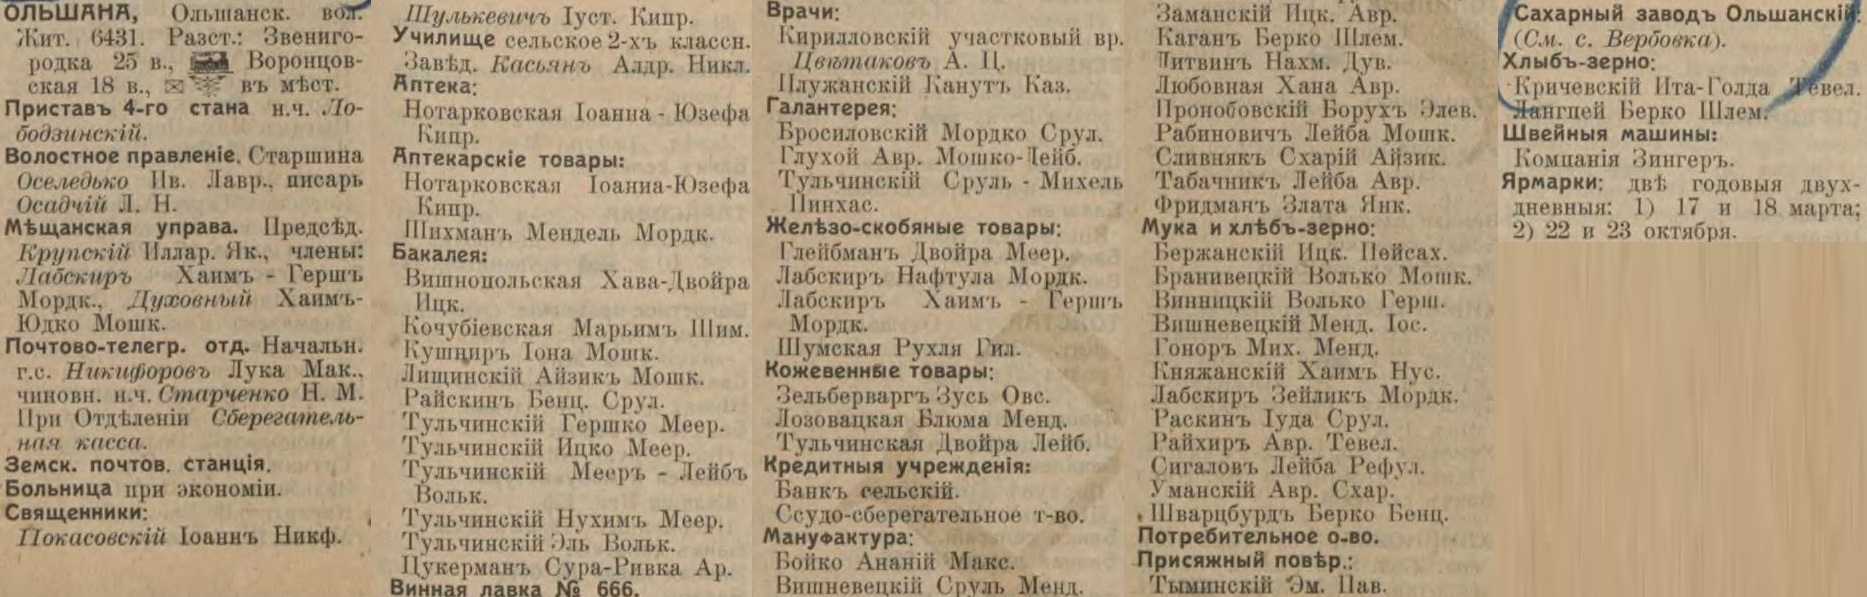 Olshana entrepreneurs list from Russian Empire Business Directories by 1913